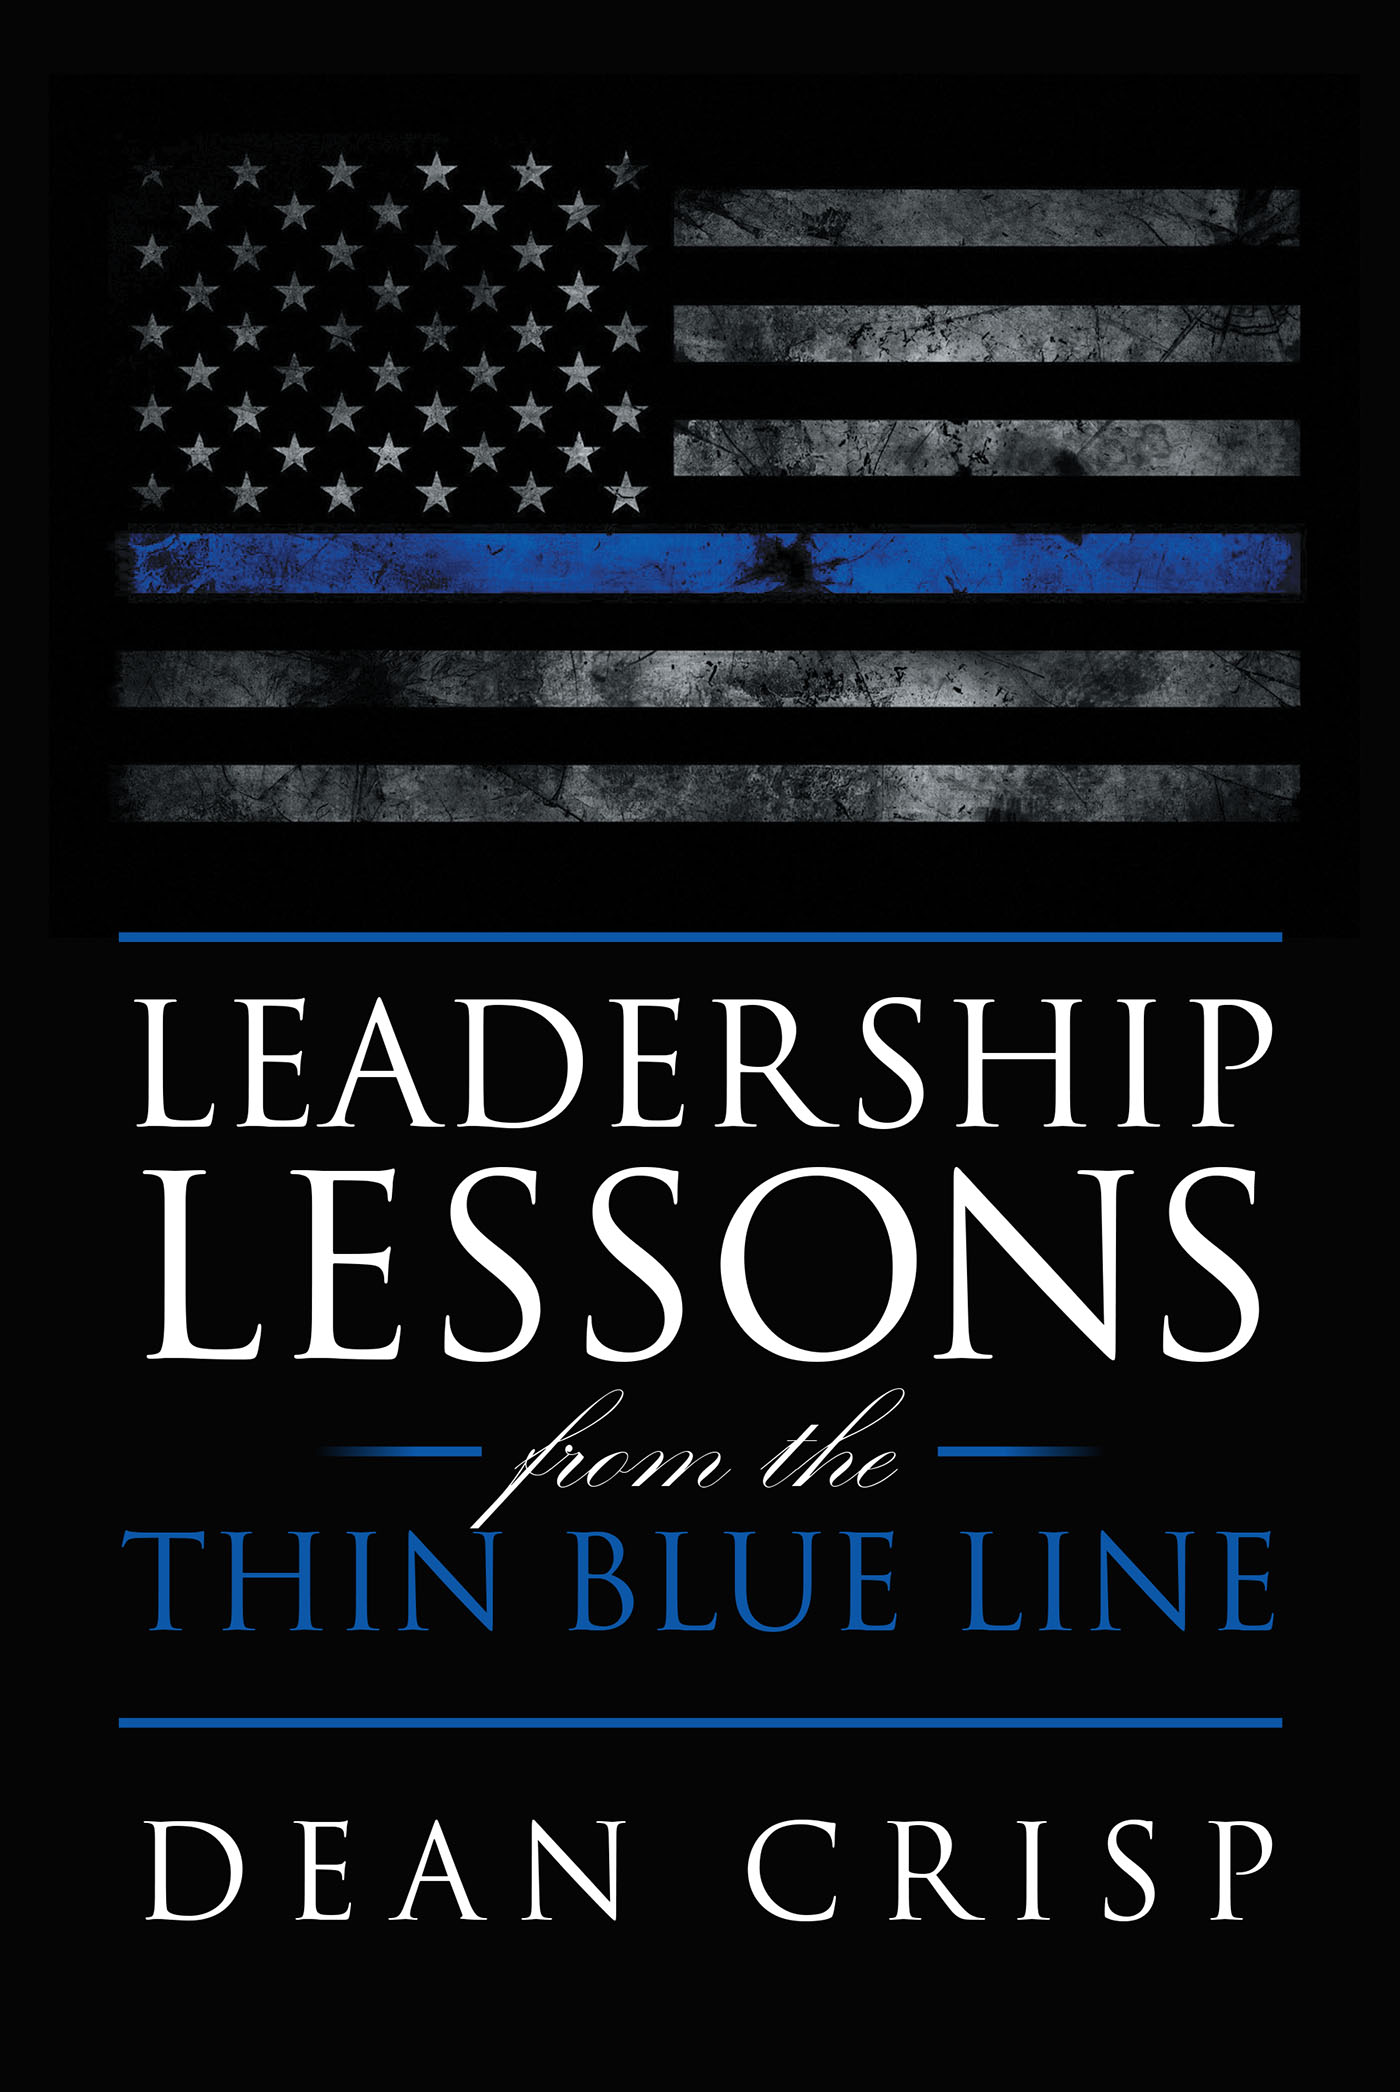 Author Dean Crisps New Book Leadership Lessons From The Thin Blue Line Is An Enlightening